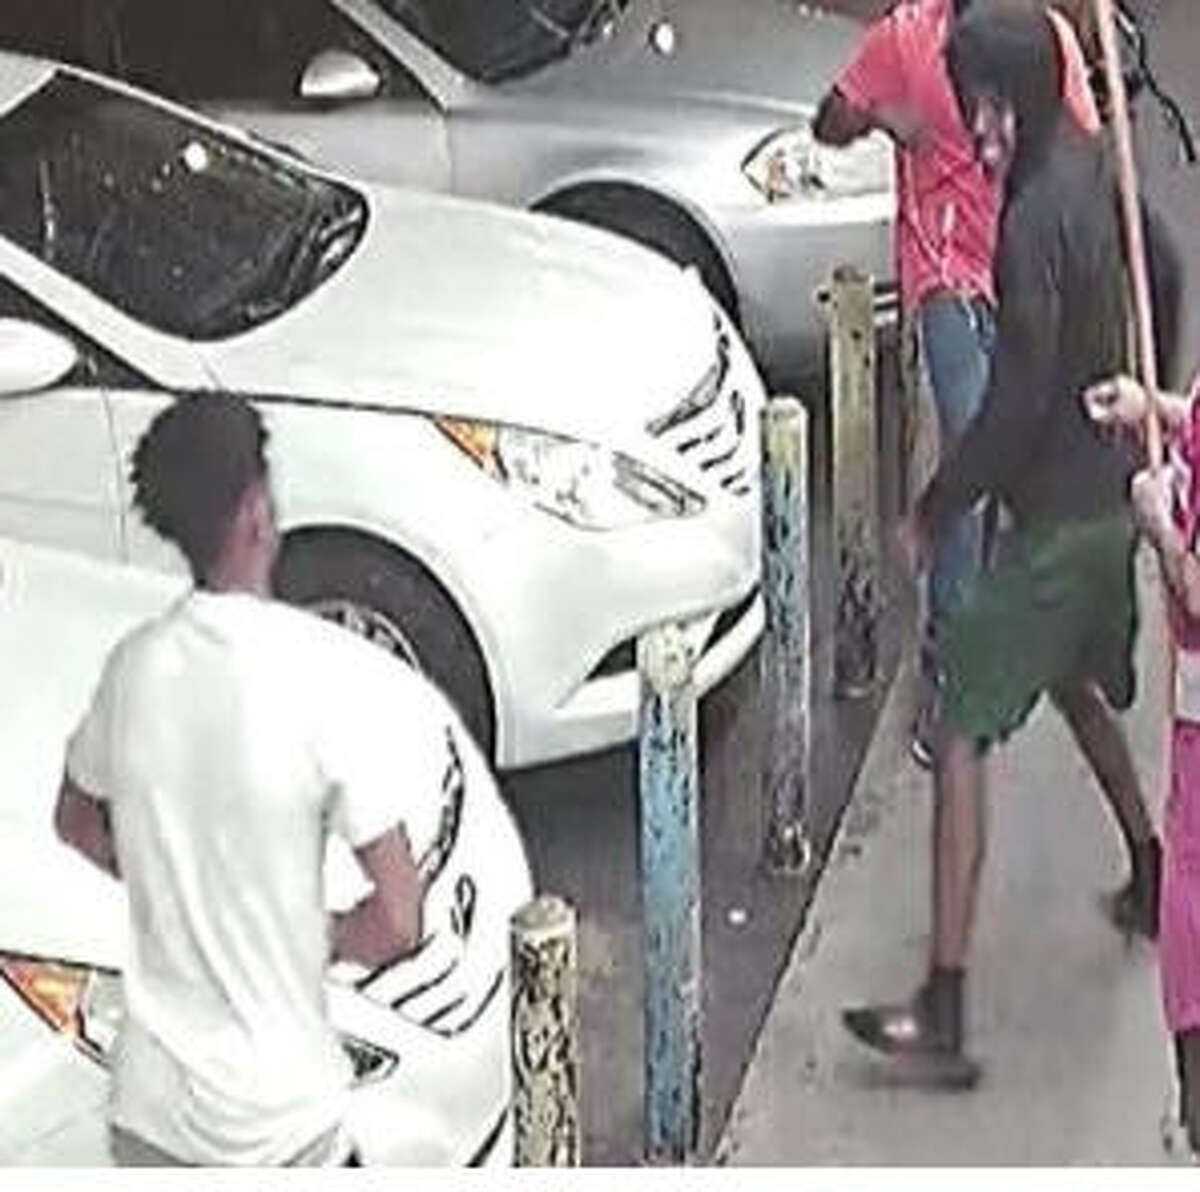 Three suspects are wanted in connection with a Sunday slaying in Third Ward.